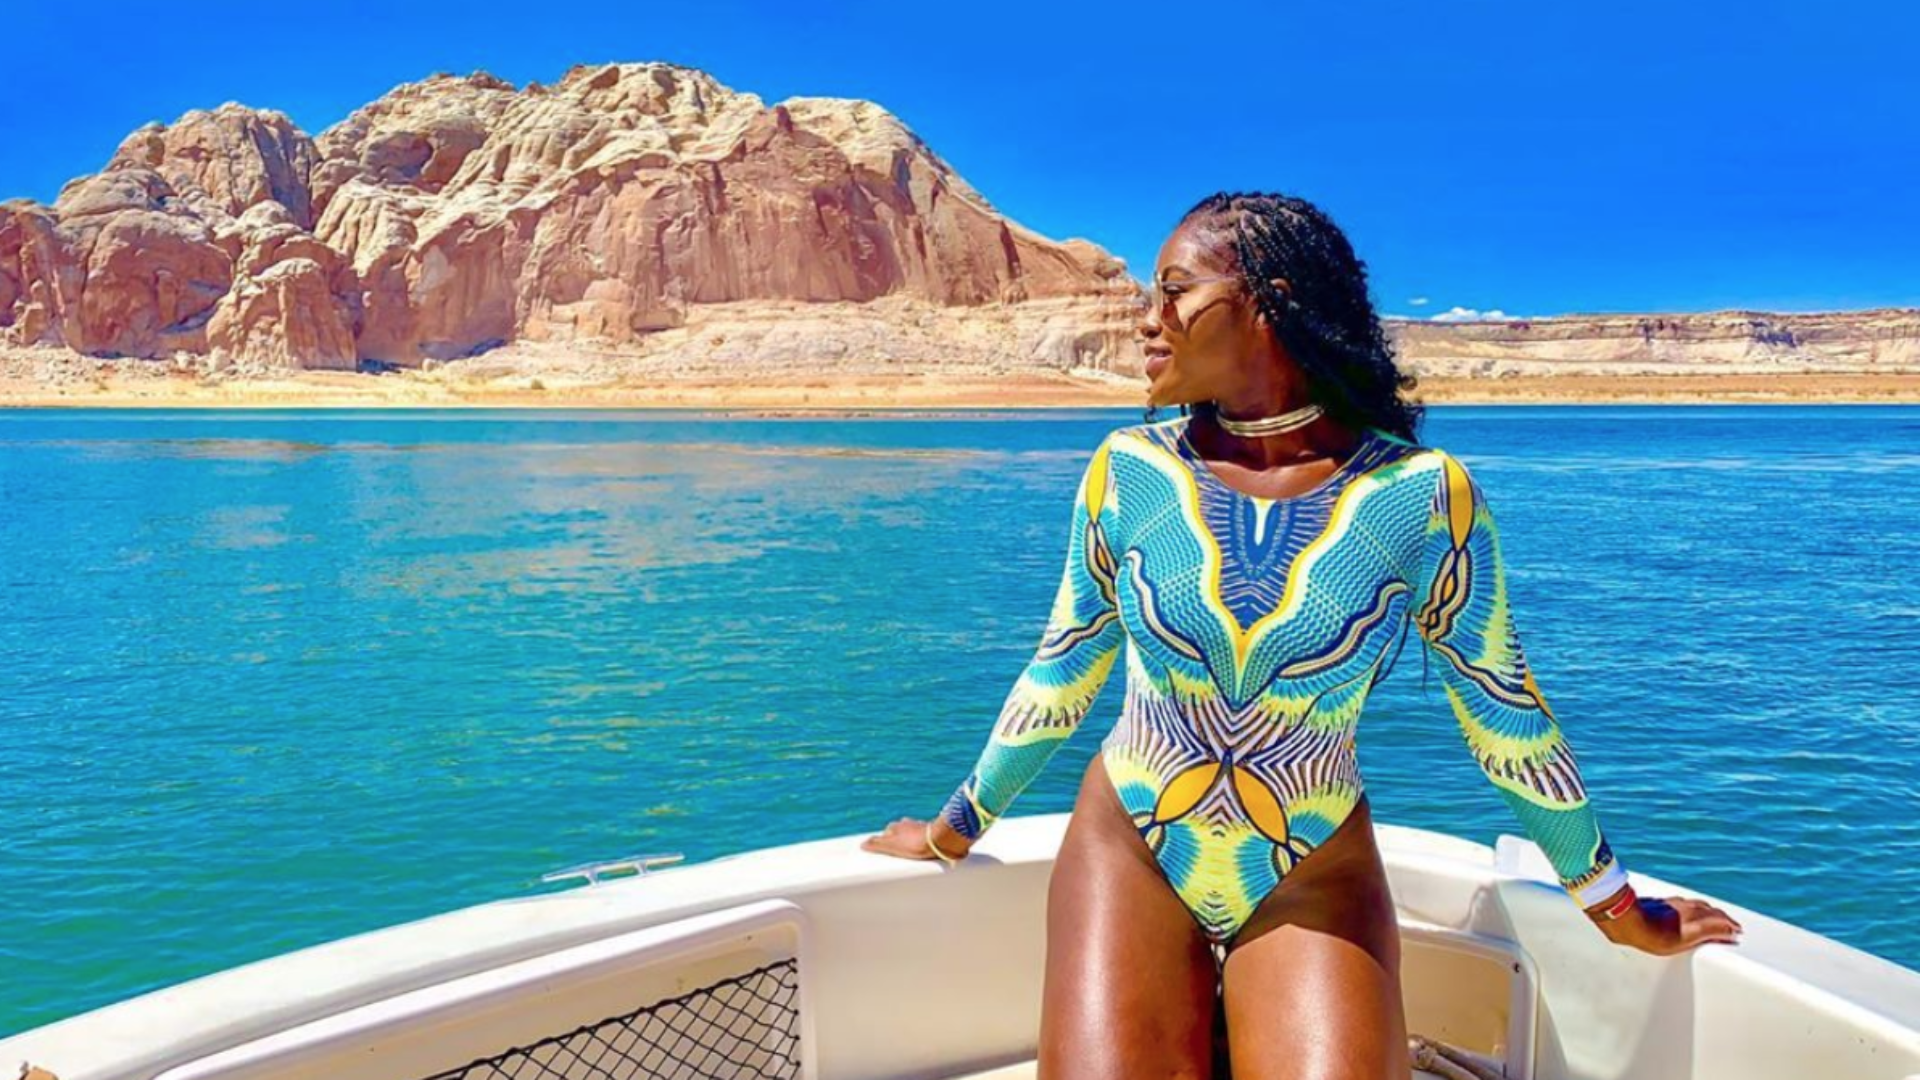 Black Travel Vibes: Get Lost In The Desert Beauty of Arizona